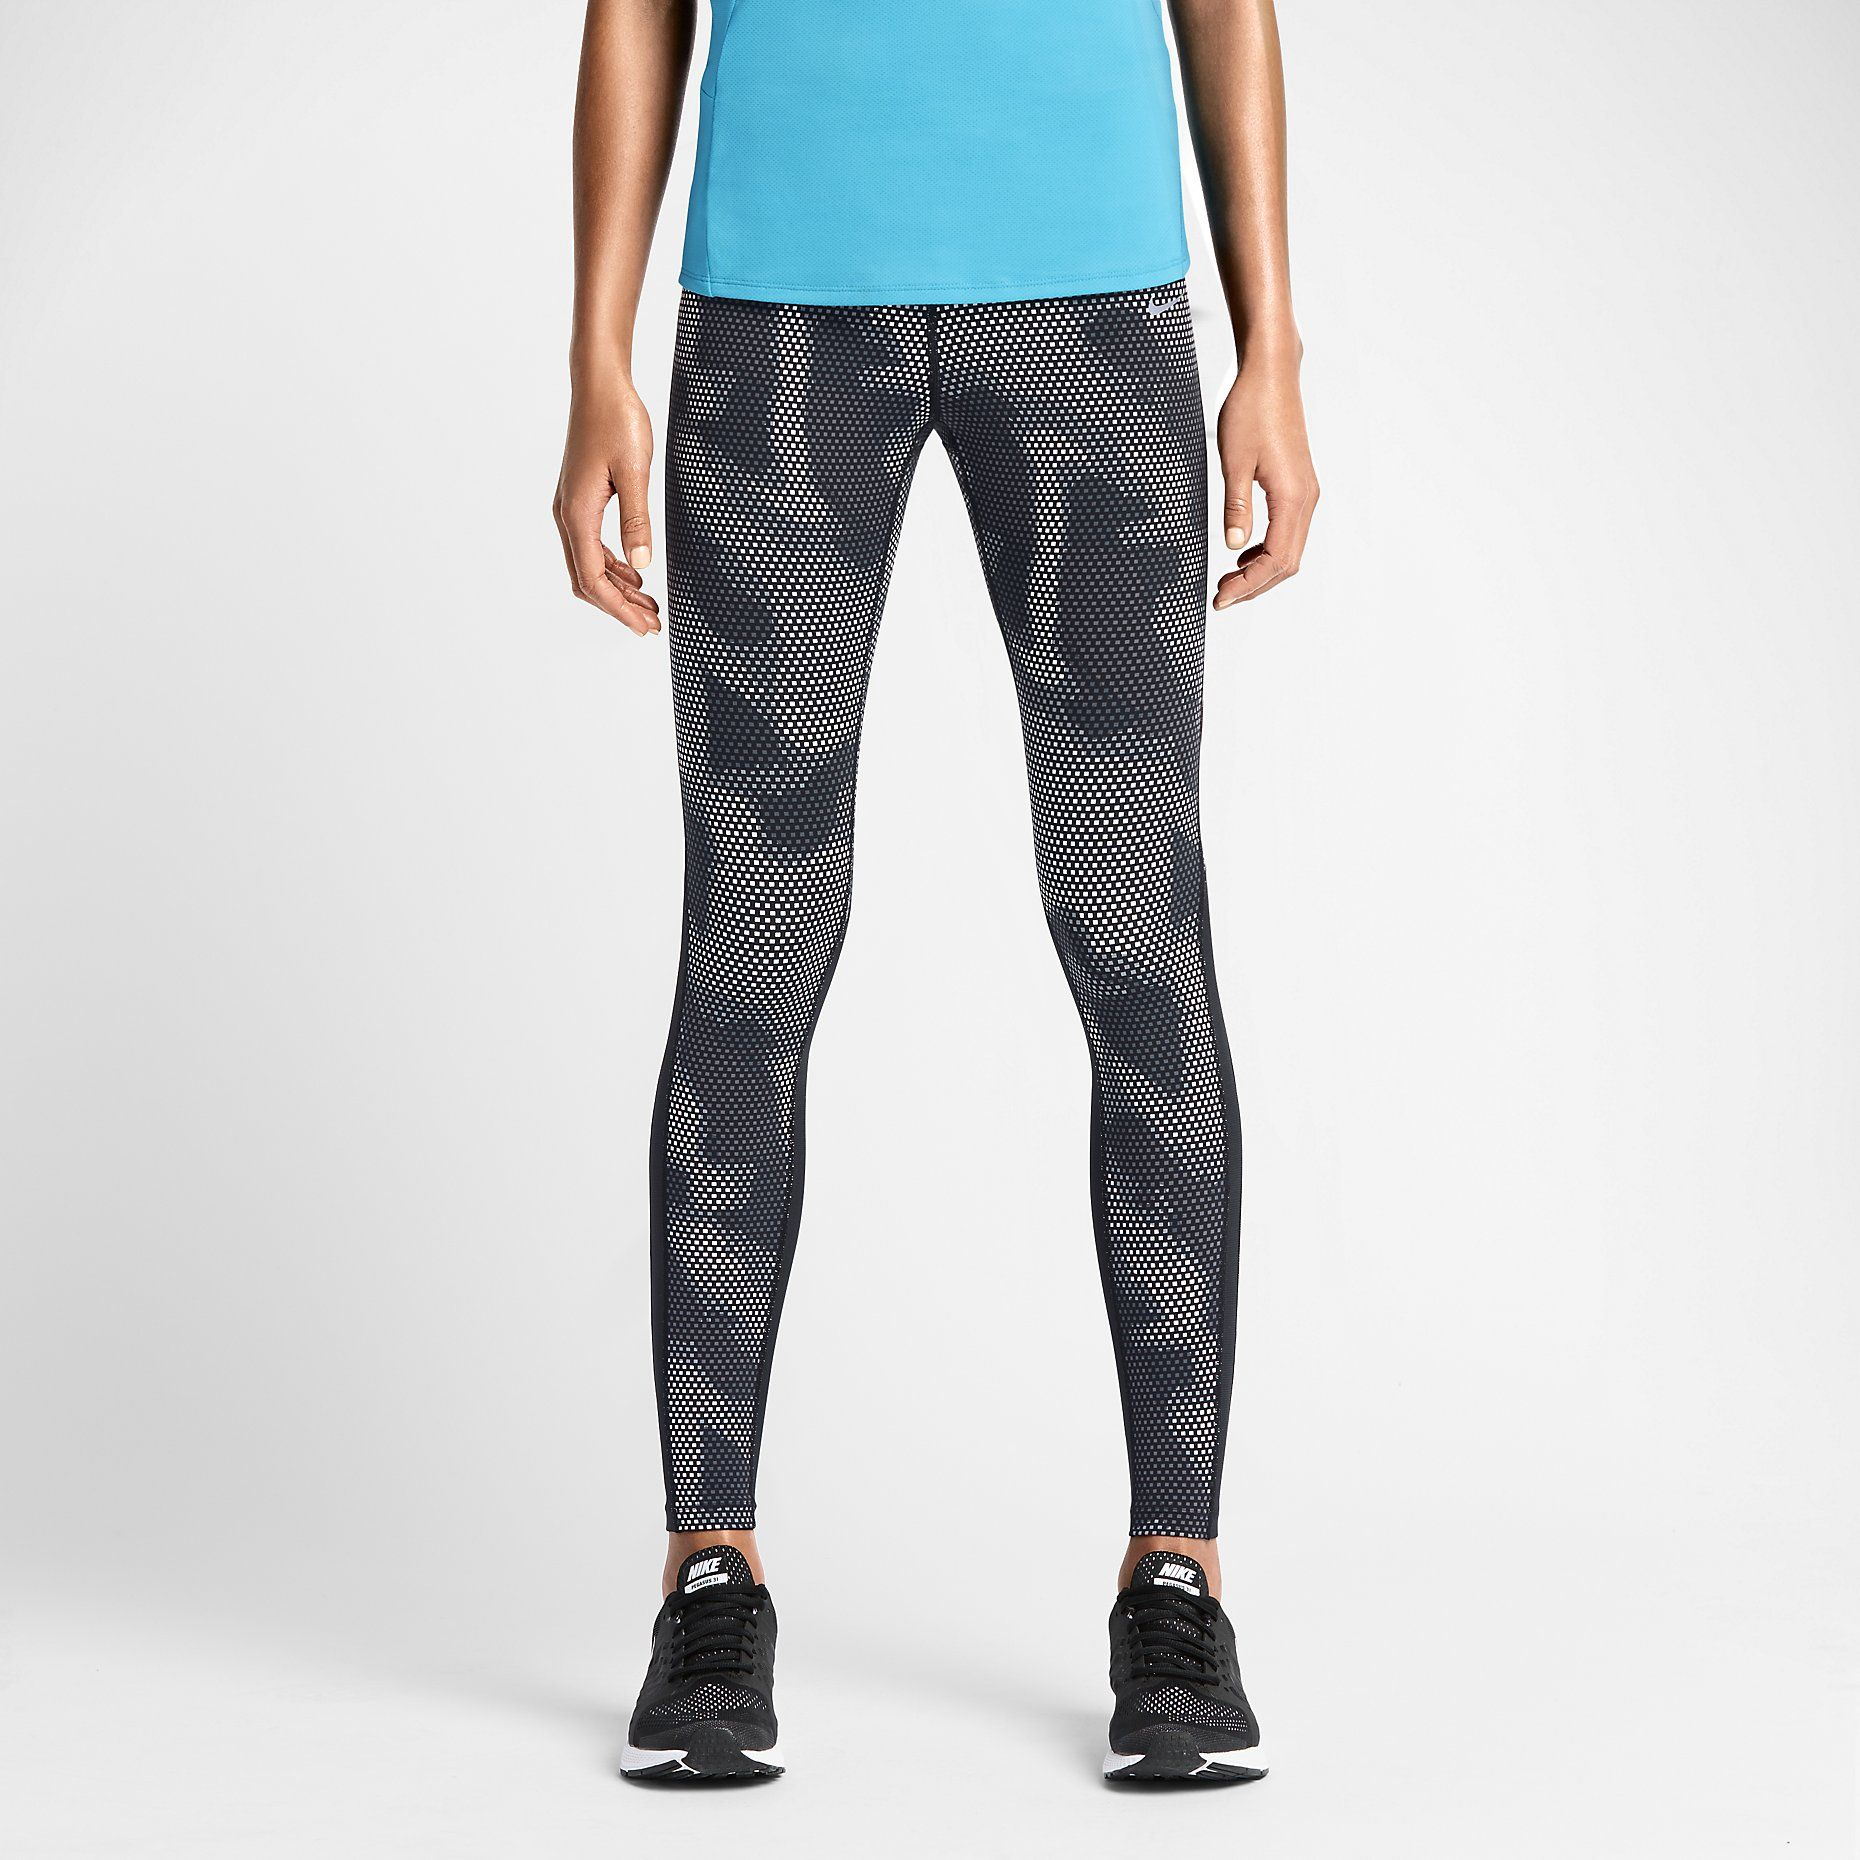 Nike Epic Lux printed women's running tights with sleek Dri-FIT fabric and  mesh panels behind your knees provide optimal ventilation. Black, white,  and grey ...